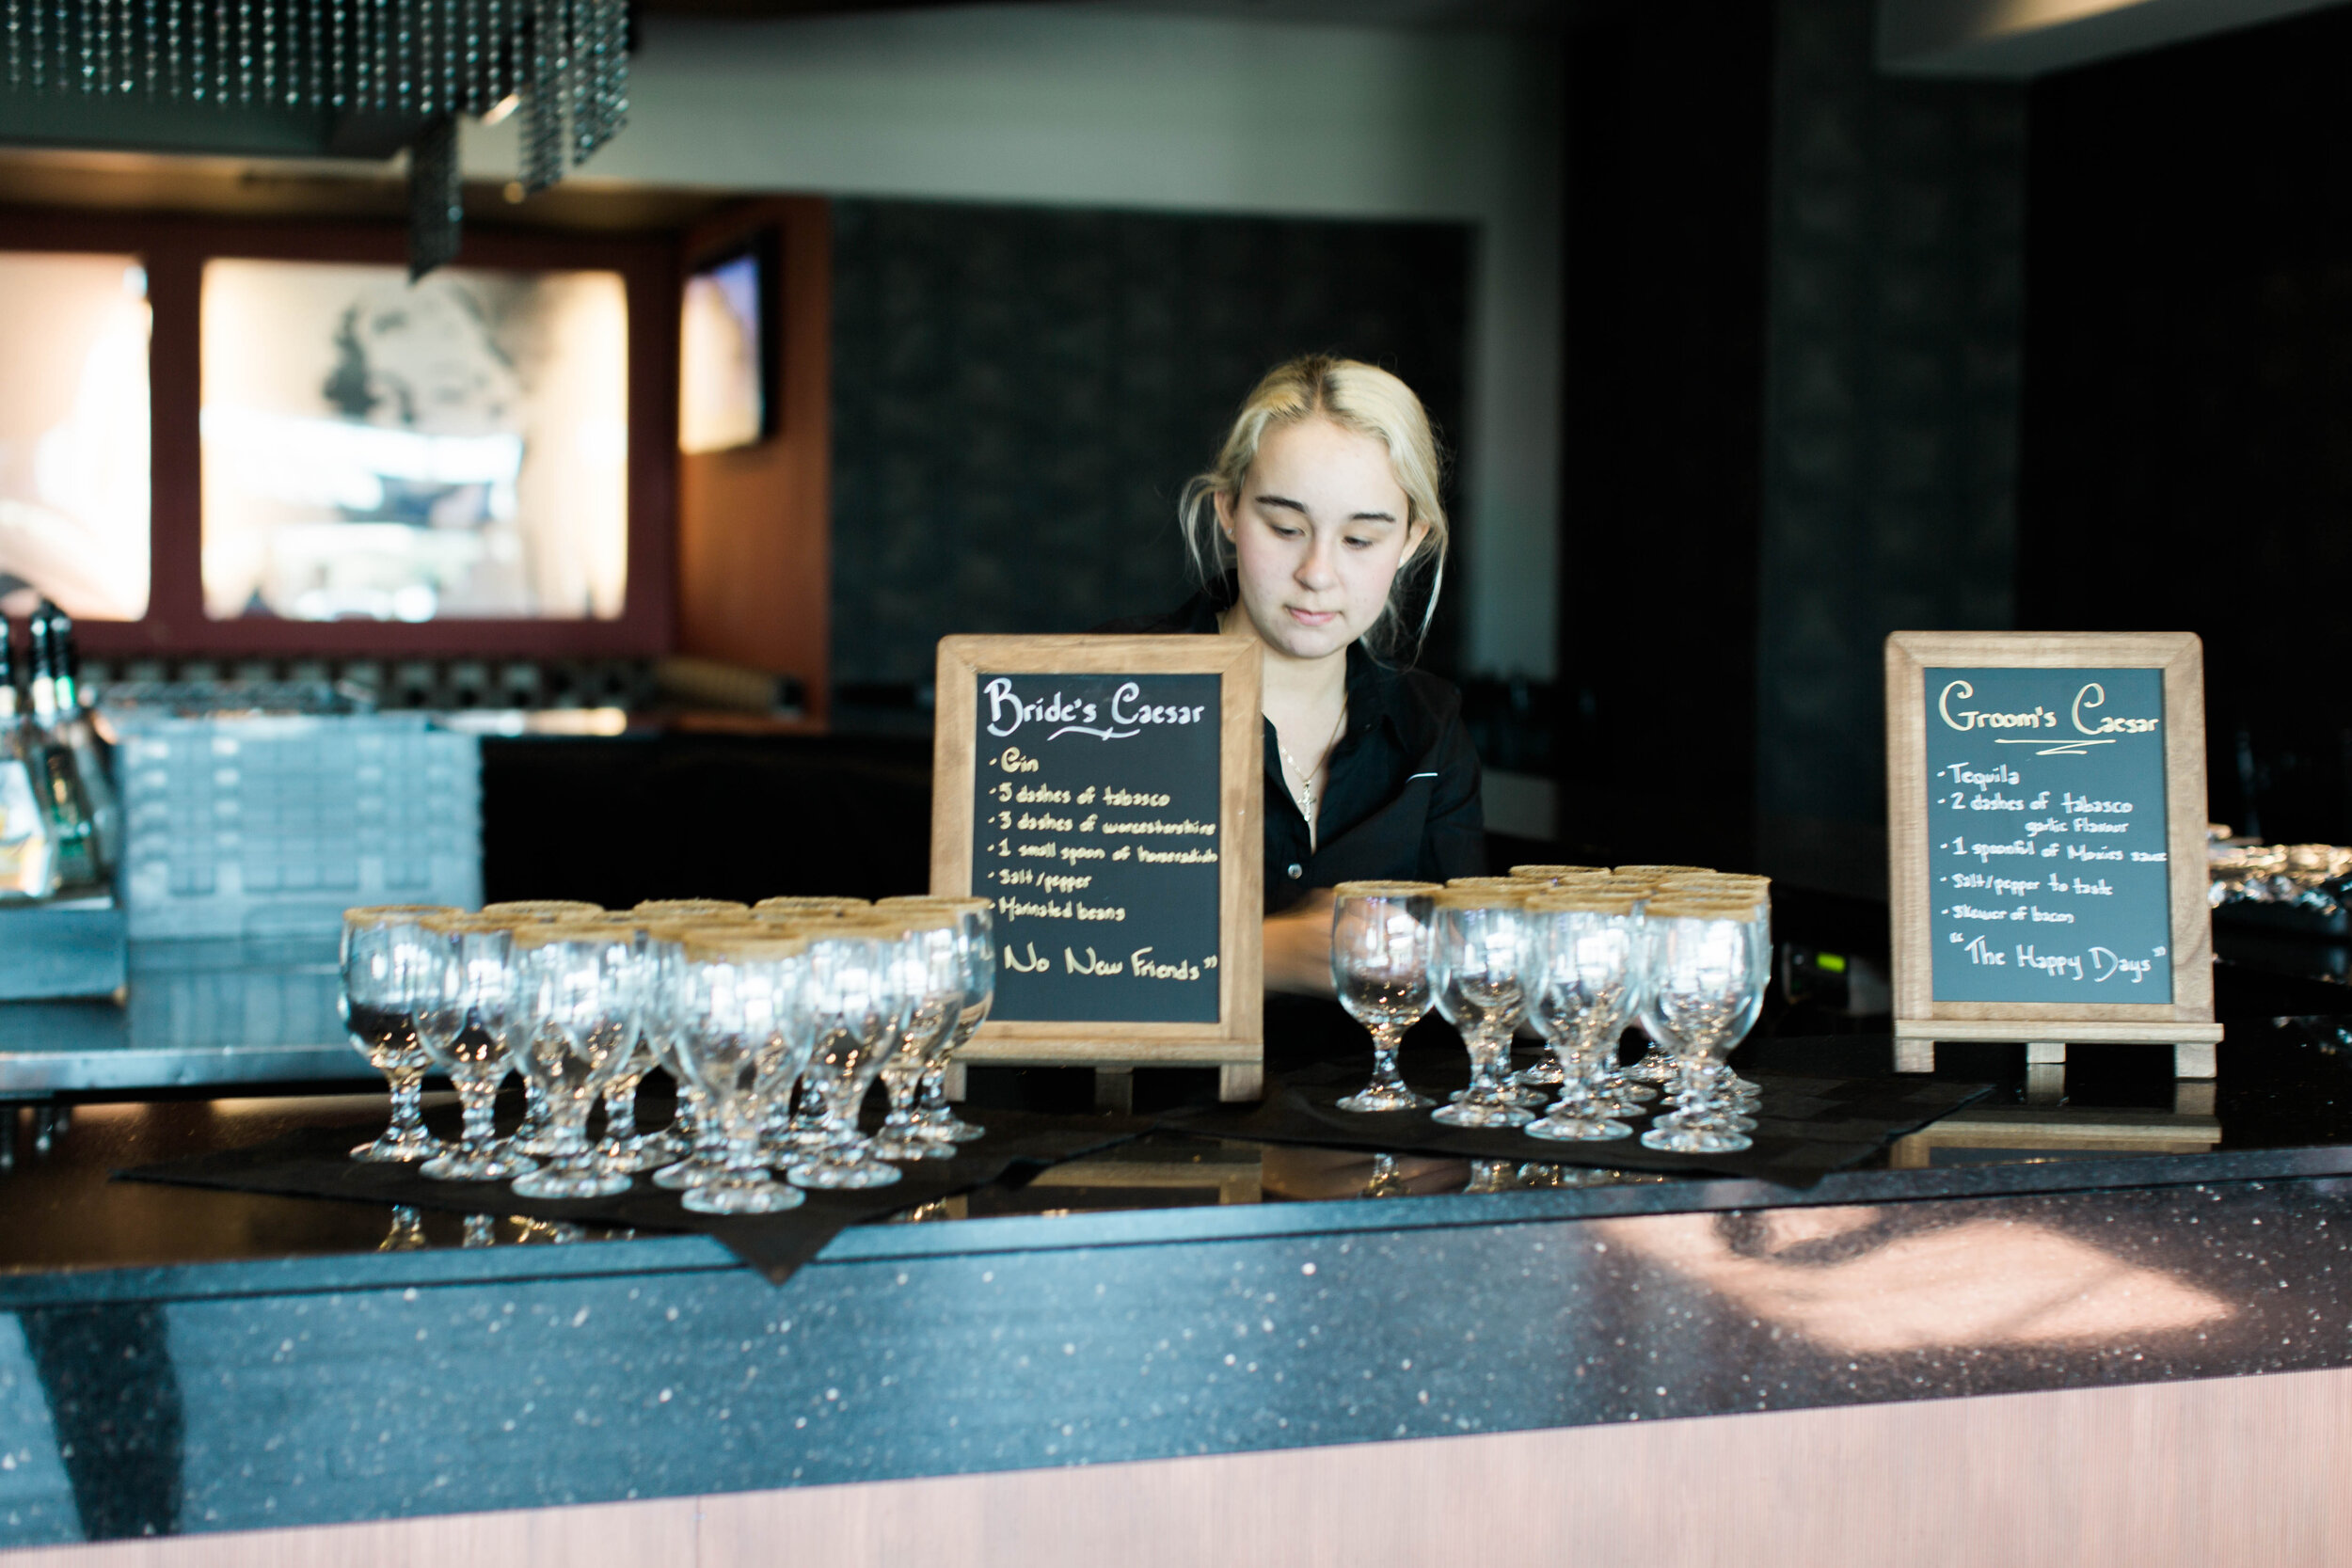 His and Hers Bride and Groom Caesar Bar - Trendy Modern Brunch Wedding - Historia Wedding and Event Planning